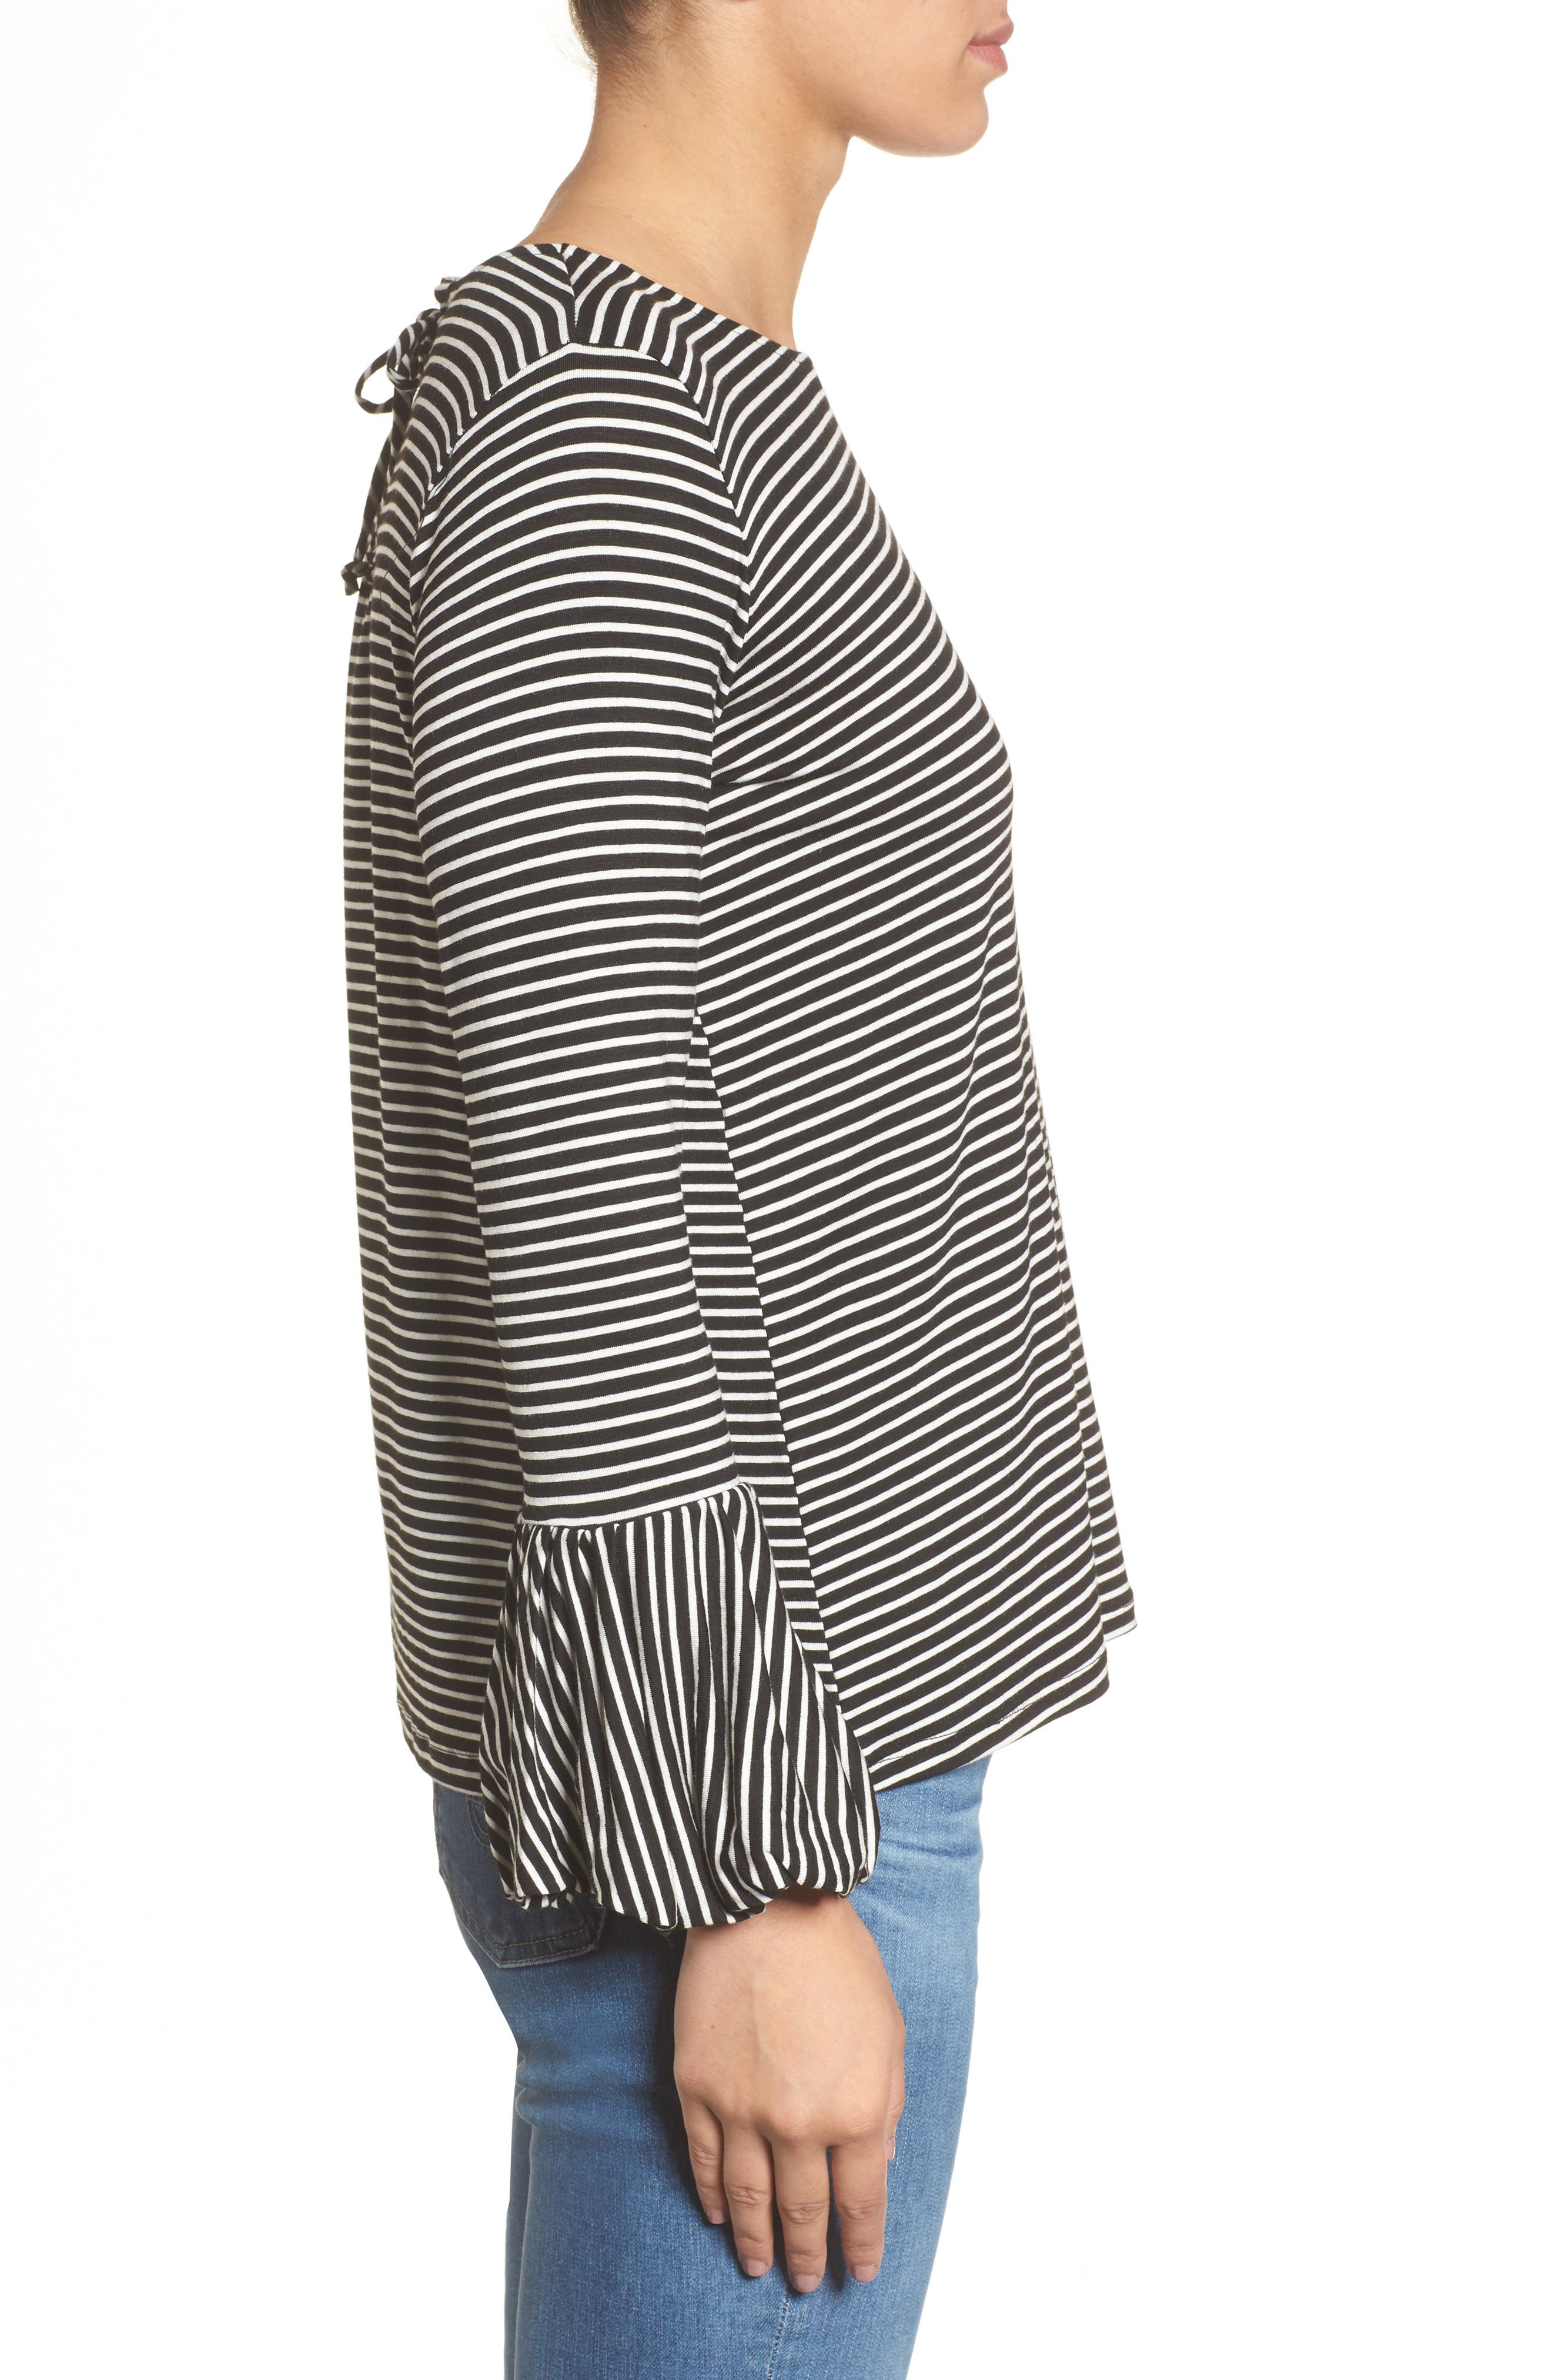 Bell Sleeve Top,                             Alternate thumbnail 3, color,                             003